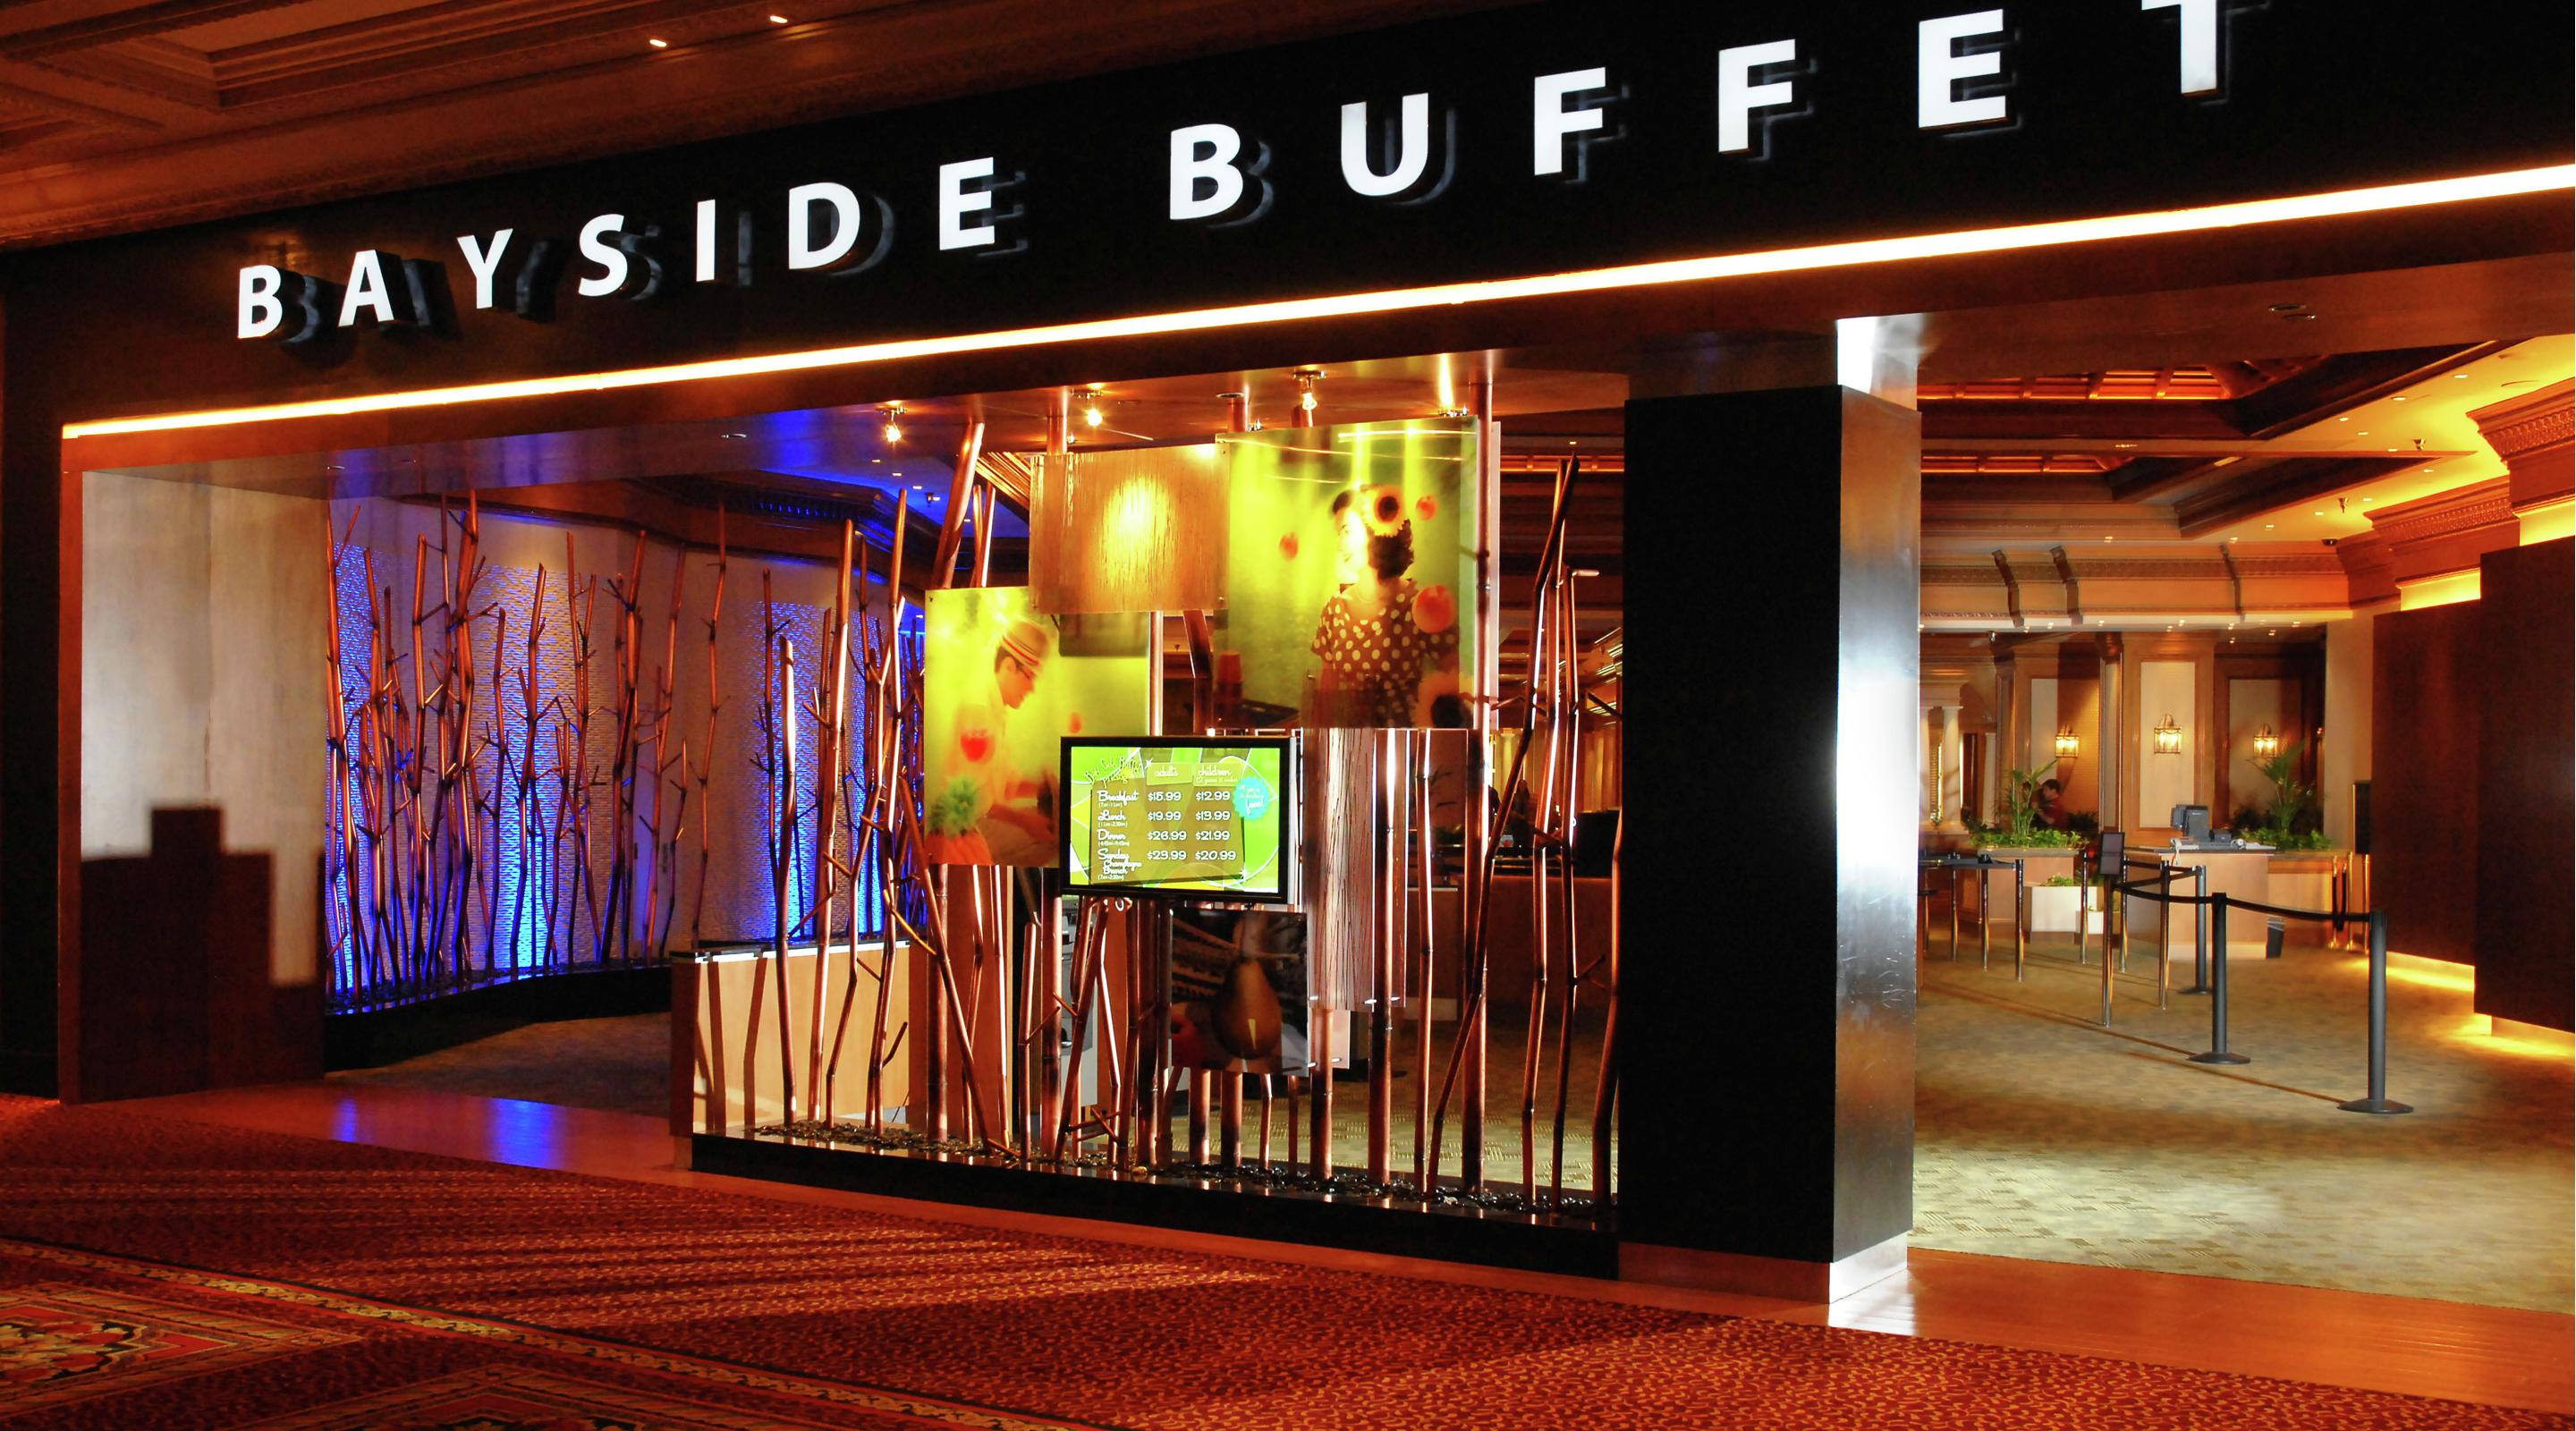 The front entrance of Bayside Buffet.